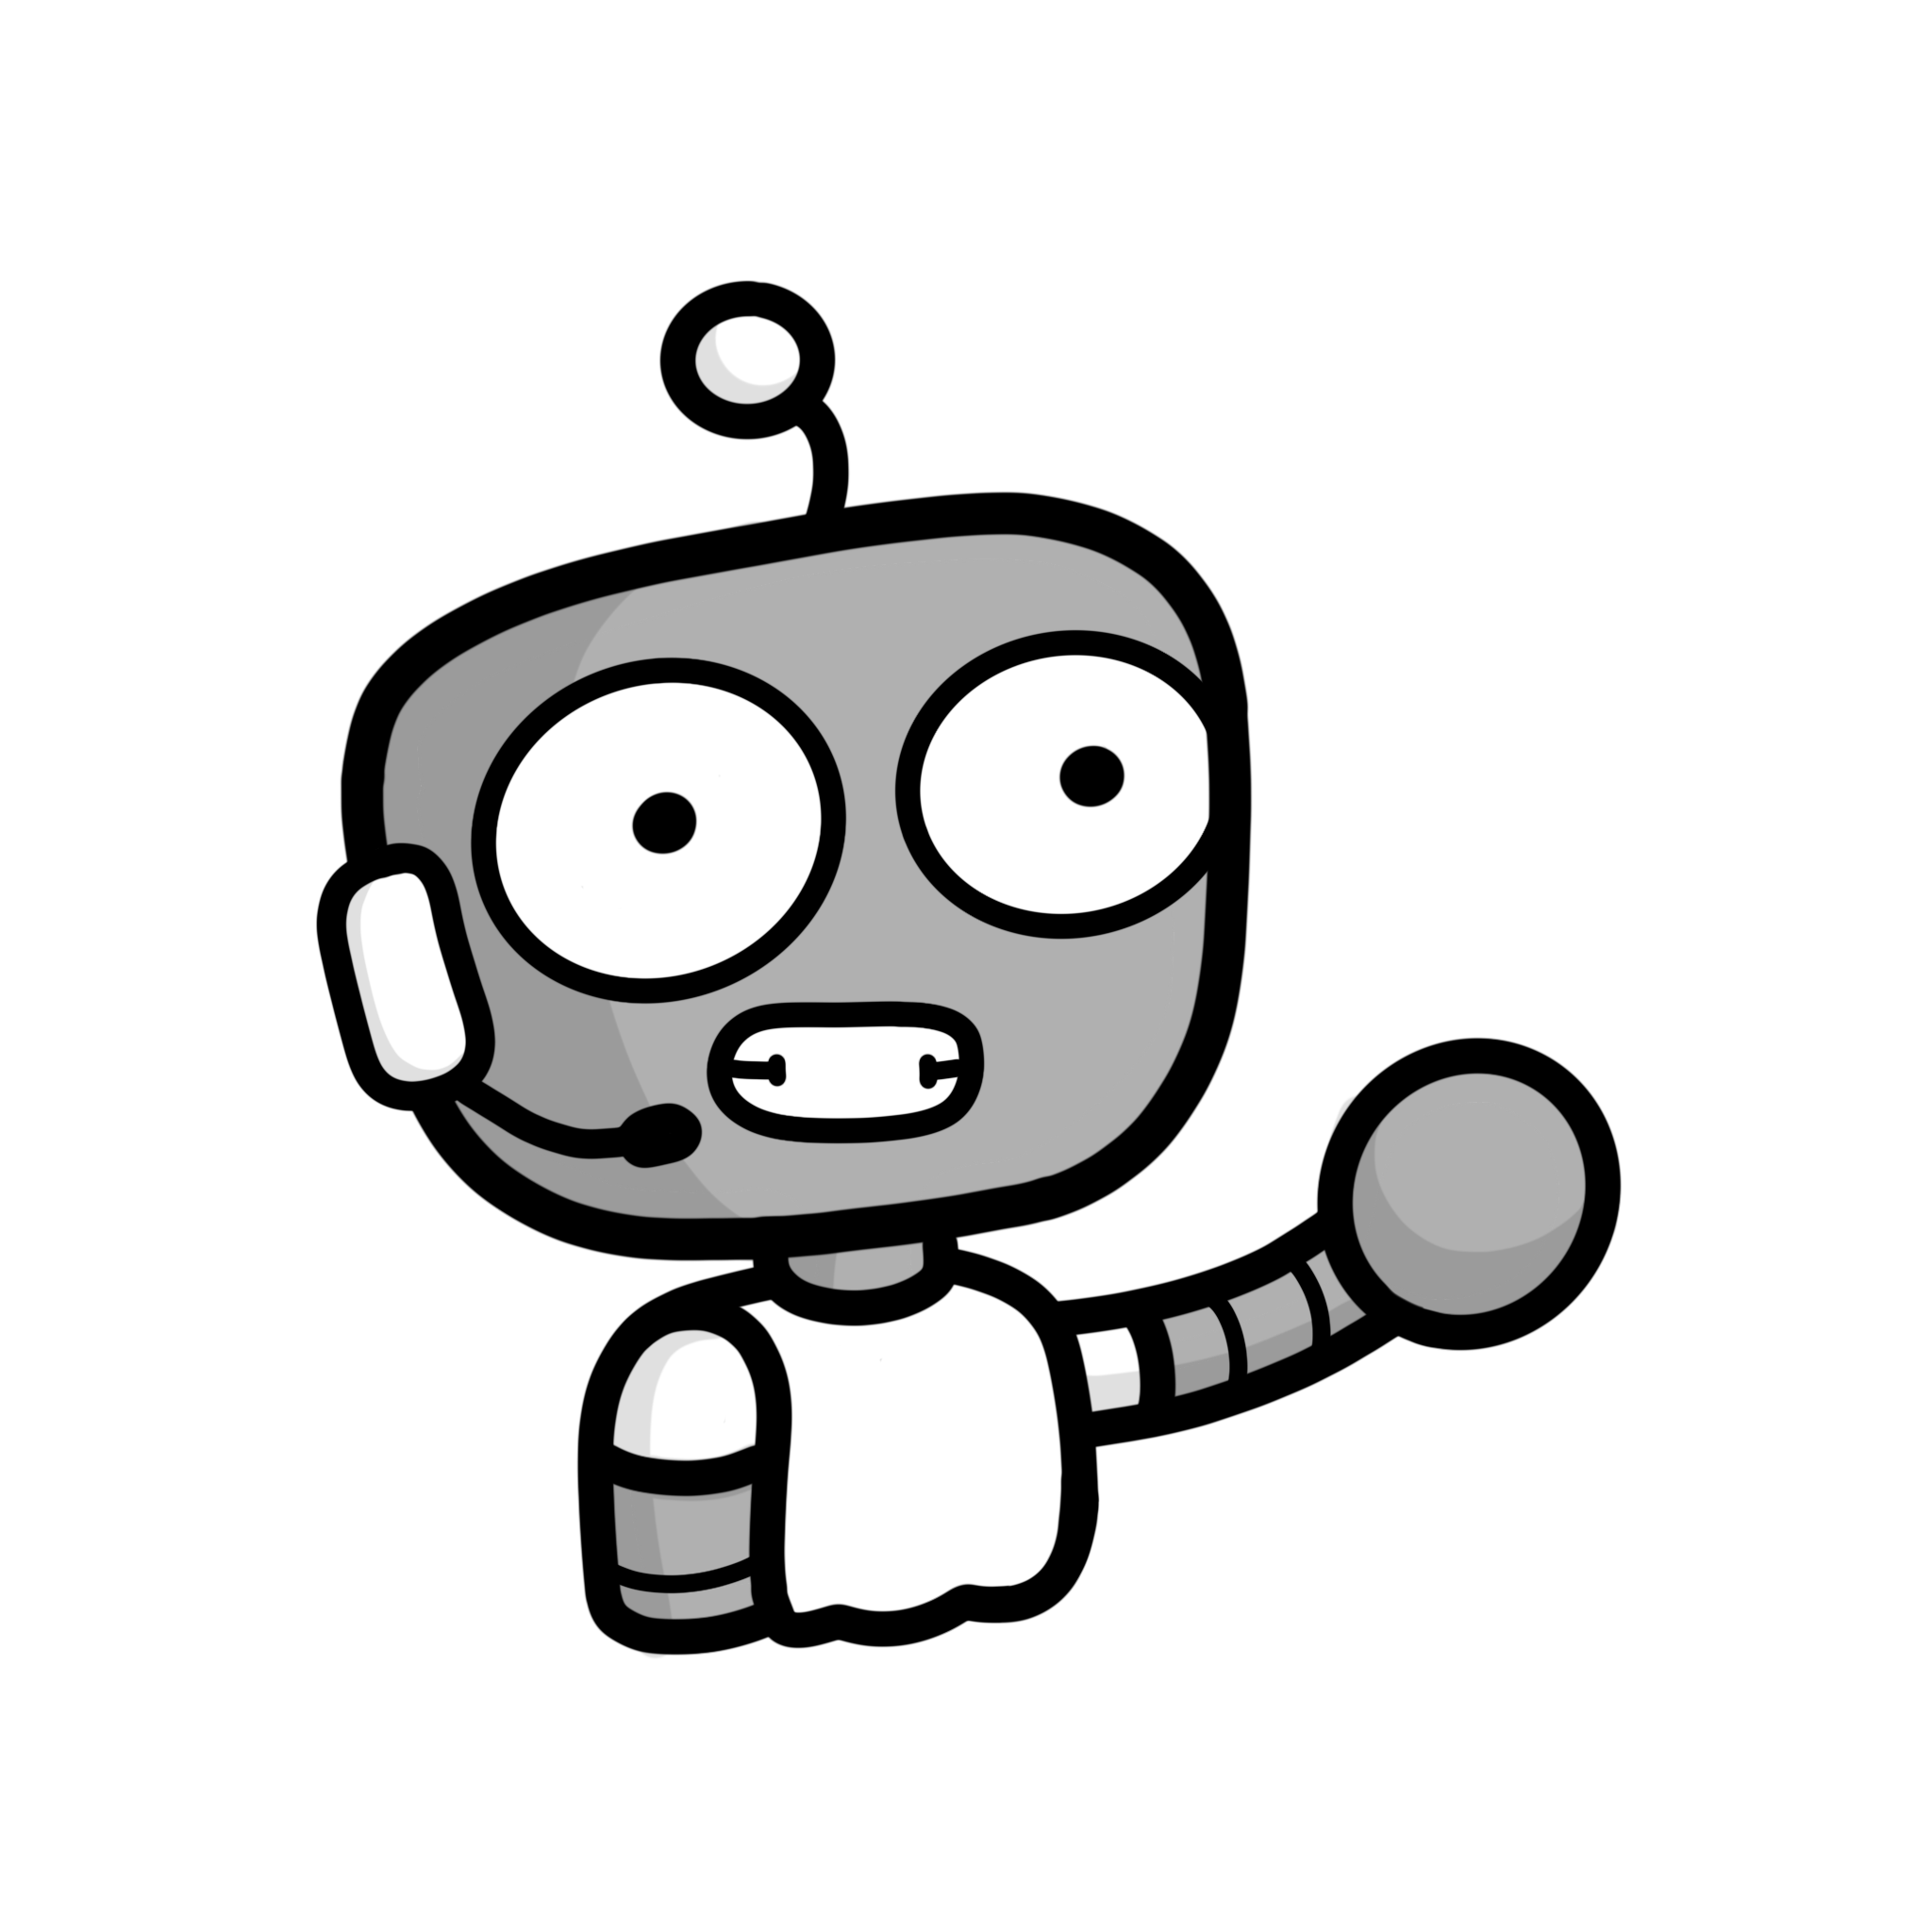 Robot with speech bubble representing talking